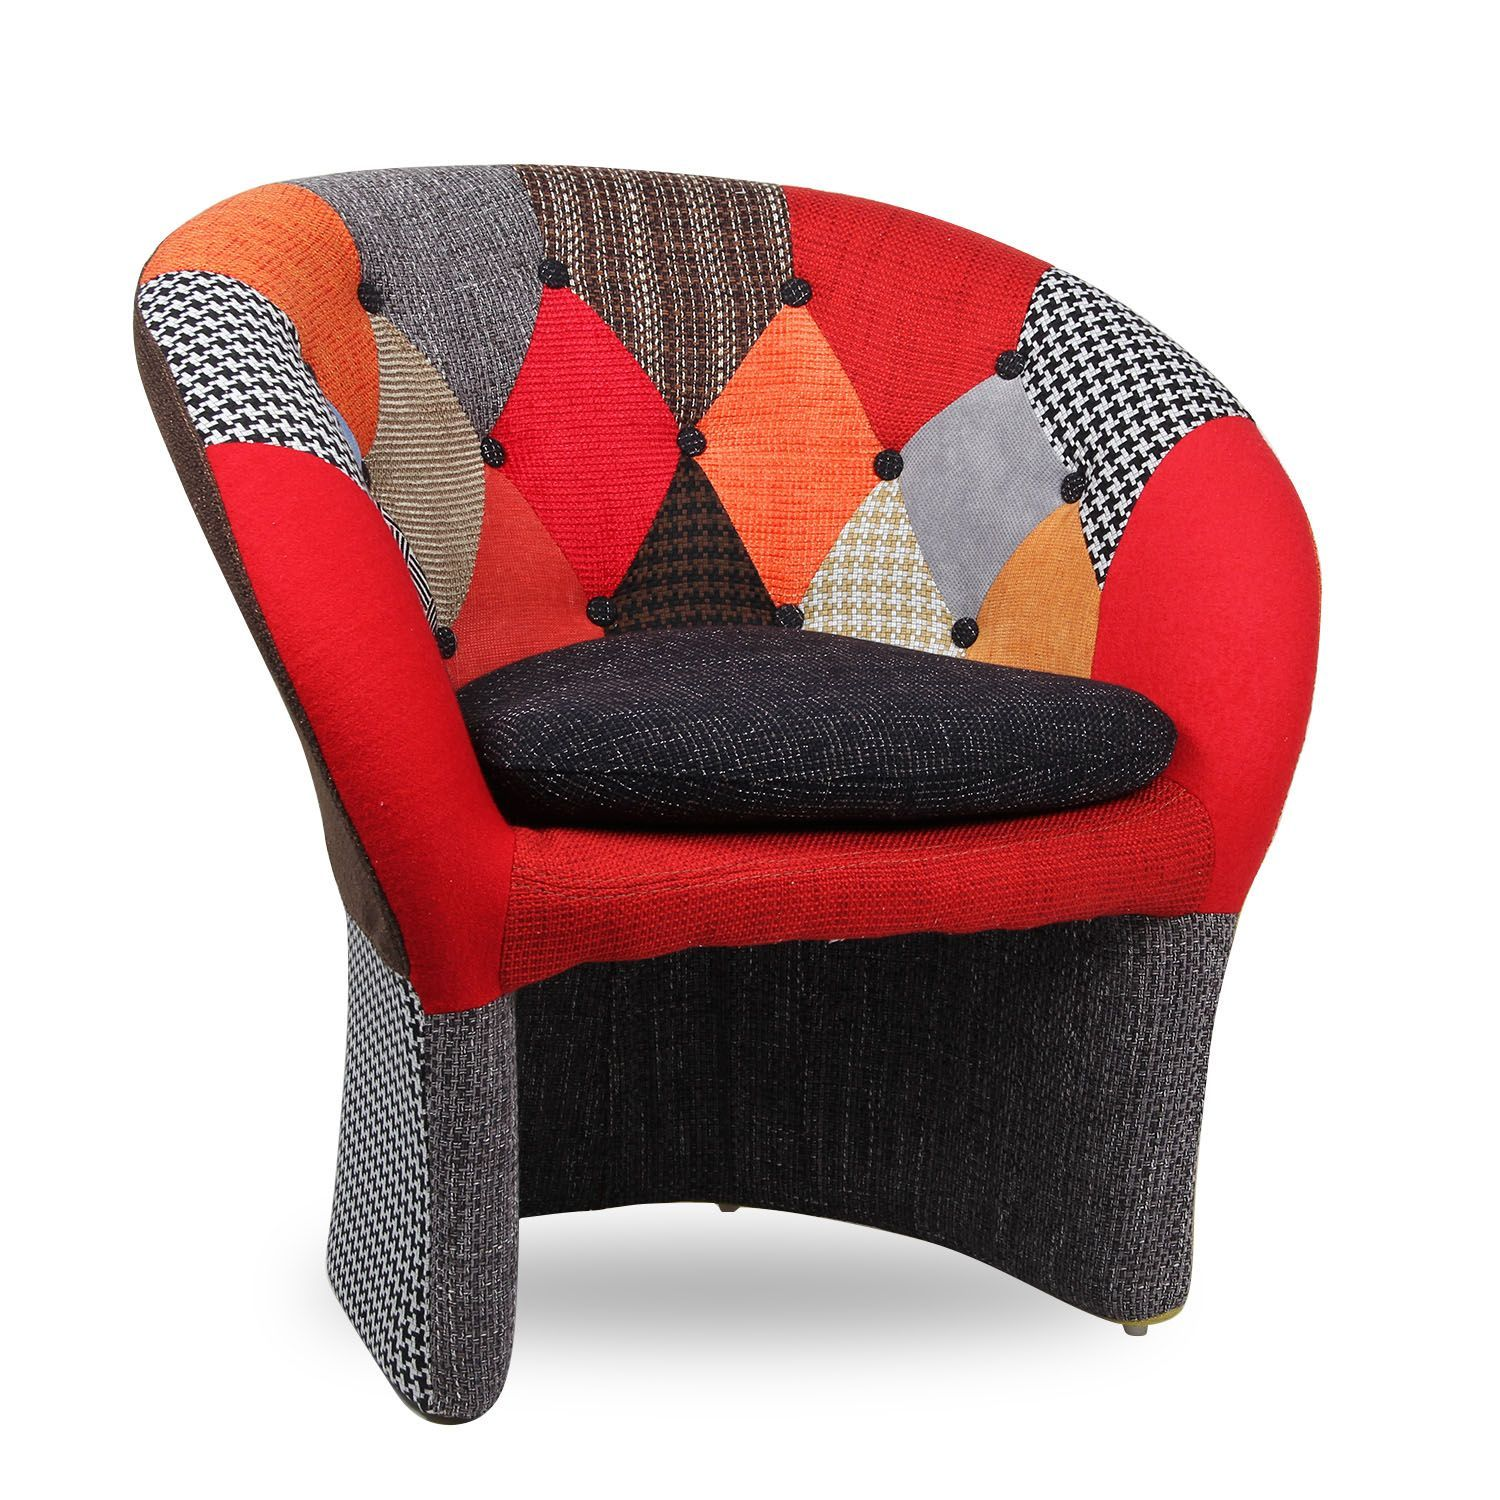 Sill n the name tapizado mix patchwork sillones - Sillones de tela ...